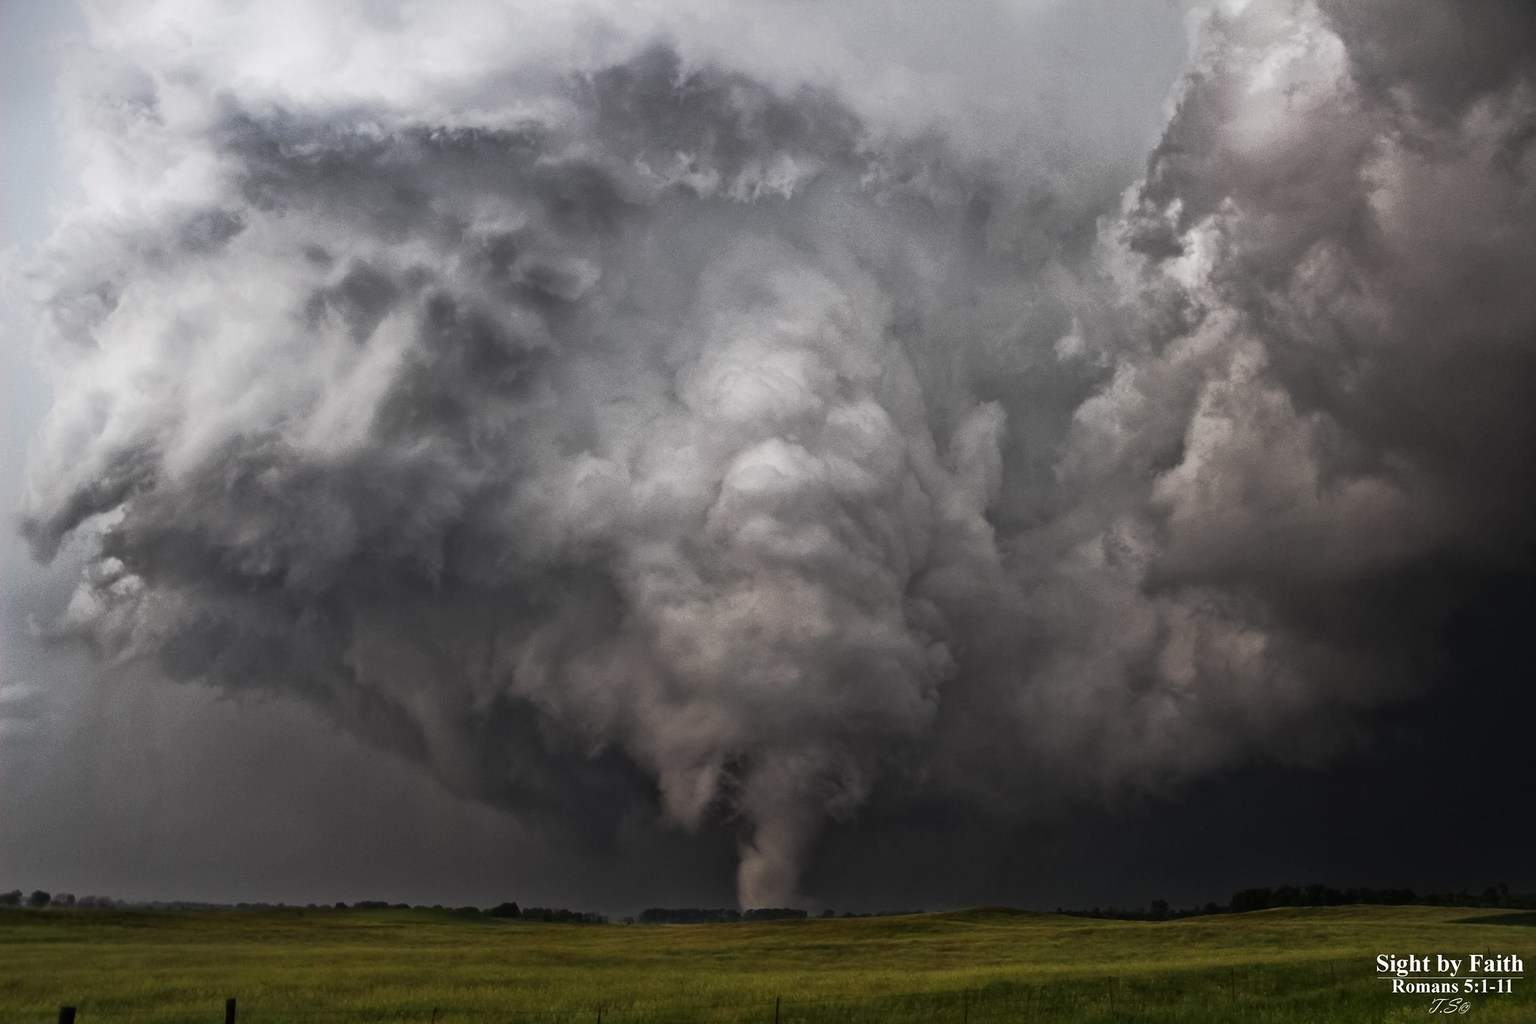 Another view of the June 18th, Alpena, SD EF4 tornado as it tore through the country side. This was one of my favorite chases from last year! The meso was totally exposed so it was a really unquiet look into the tornado genesis. Also continue to pray for the families whose homes were damaged by this tornado in Wessington Springs, SD.